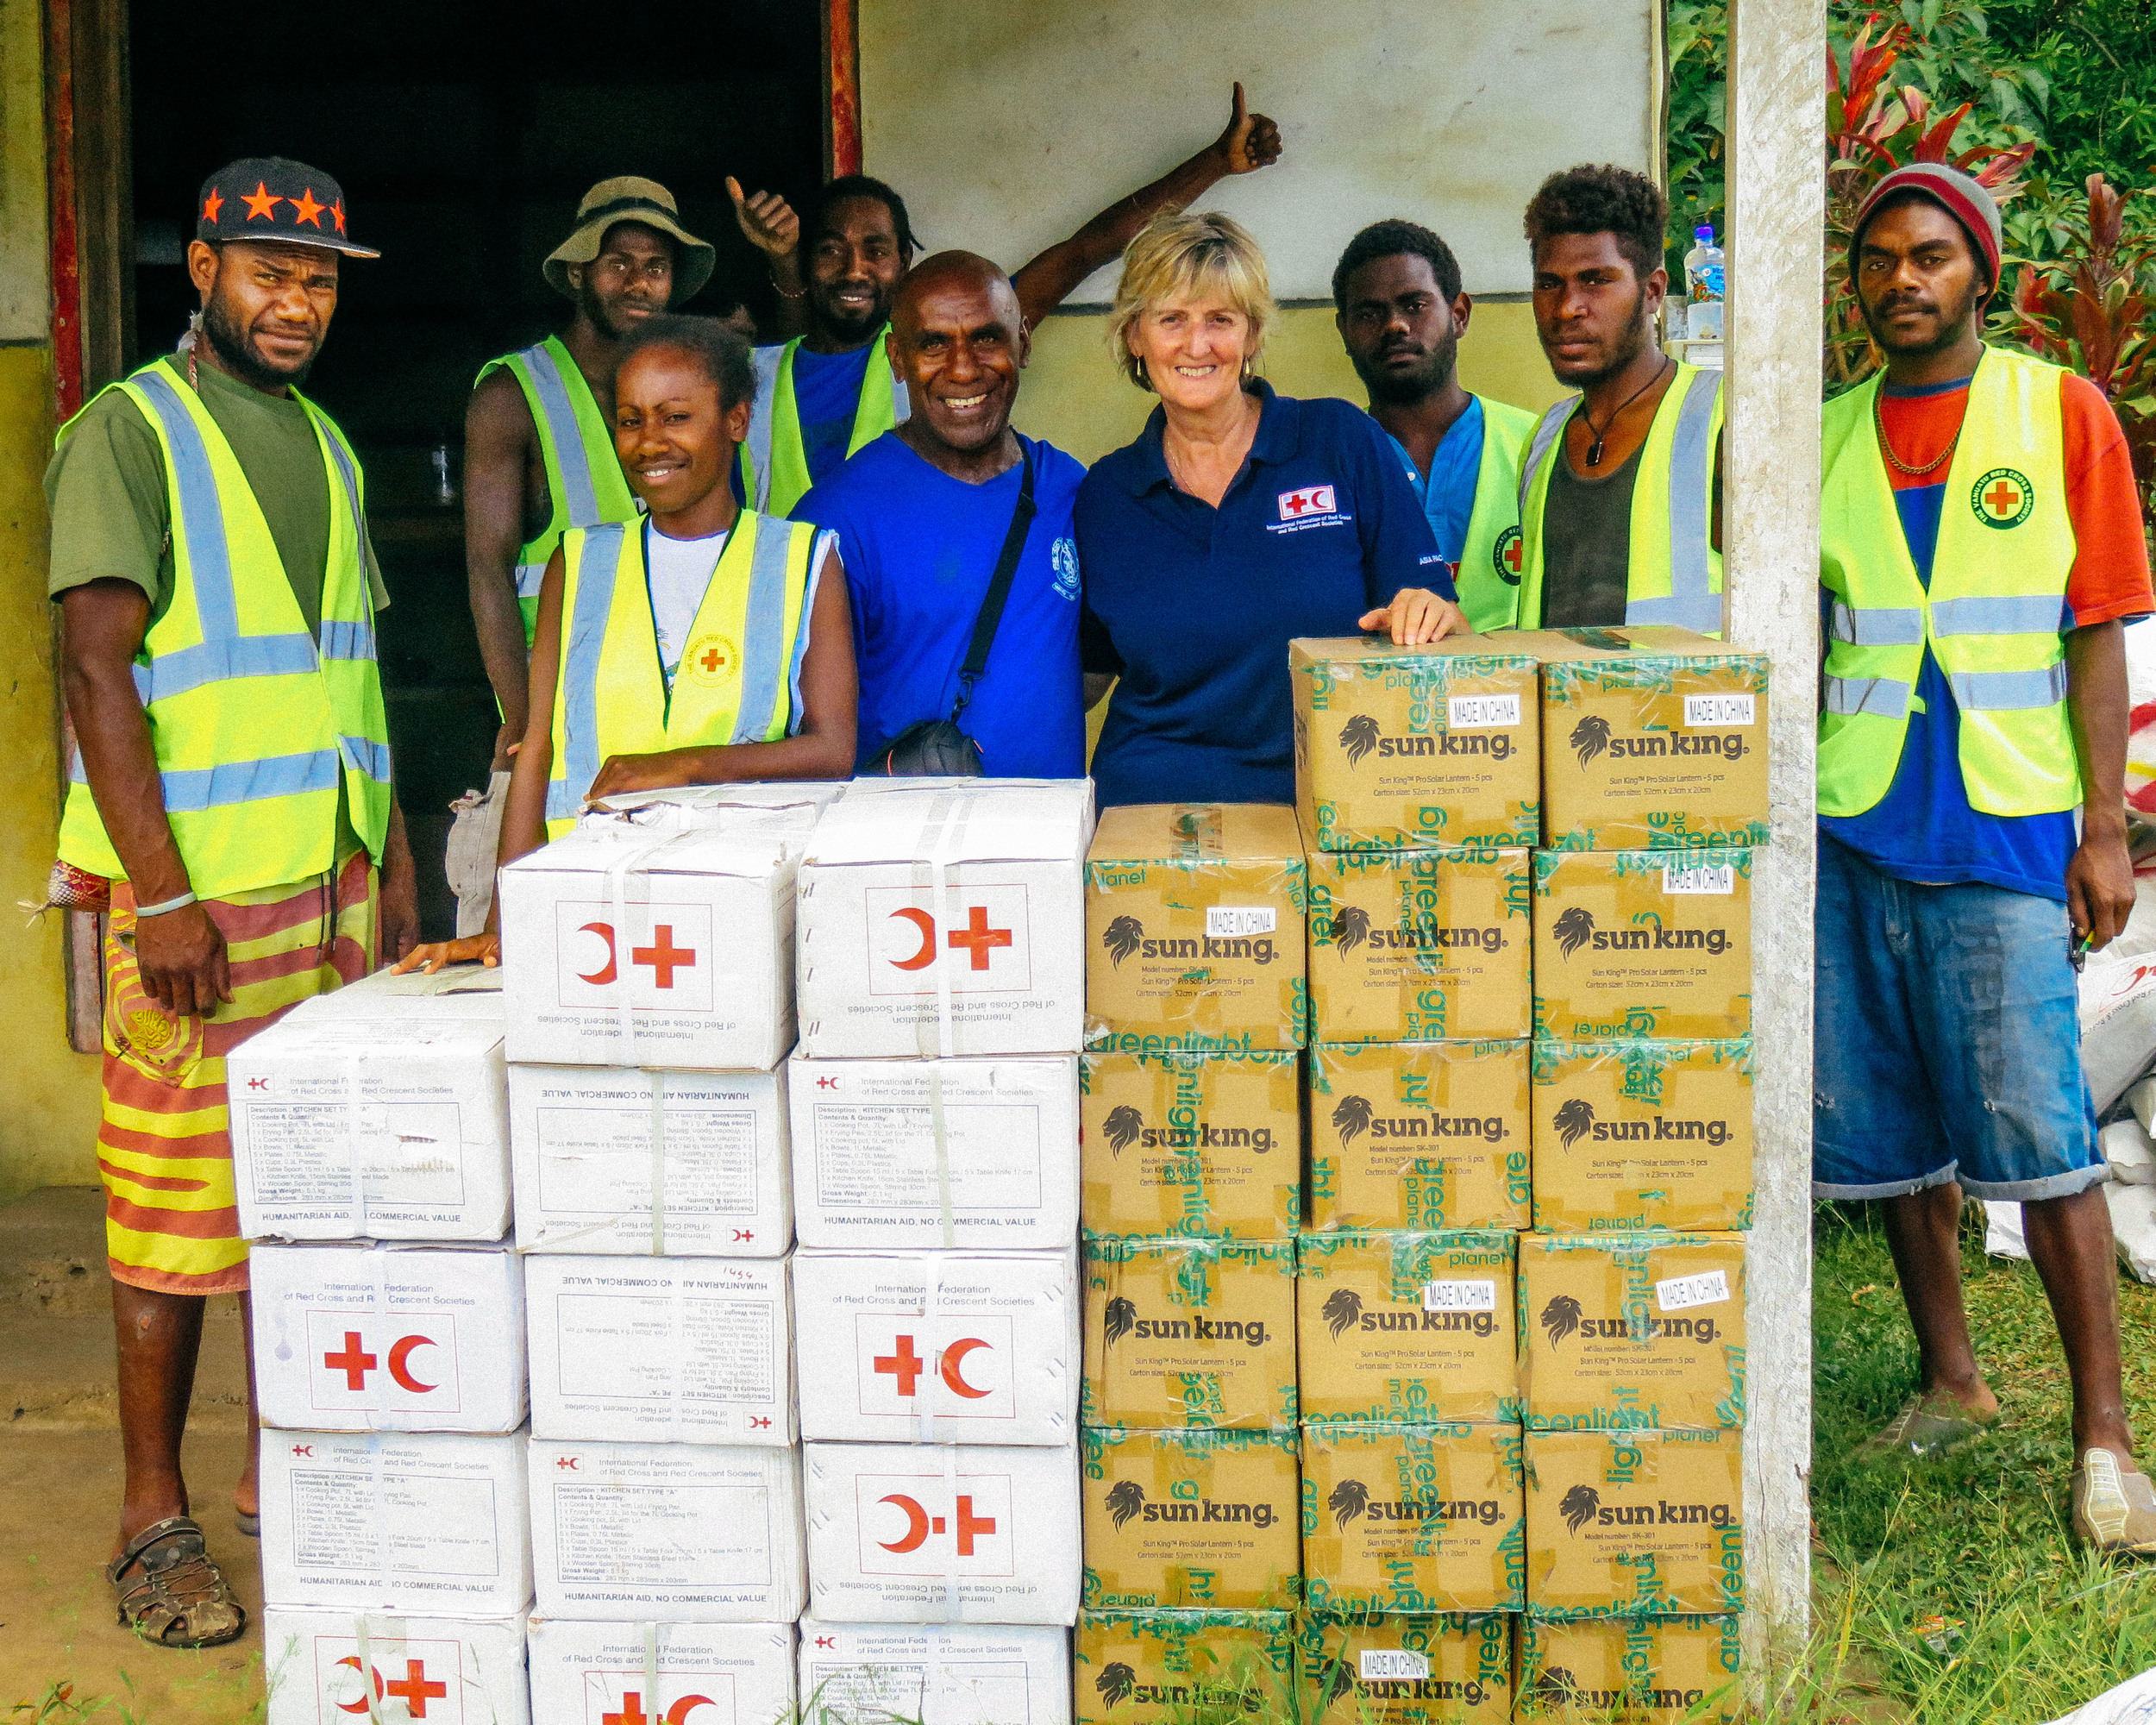 Supplies of emergency non-food relief items arrive in Tanna, Vanuatu to be stored in case of disaster. Source: Franco Fong, IFRC